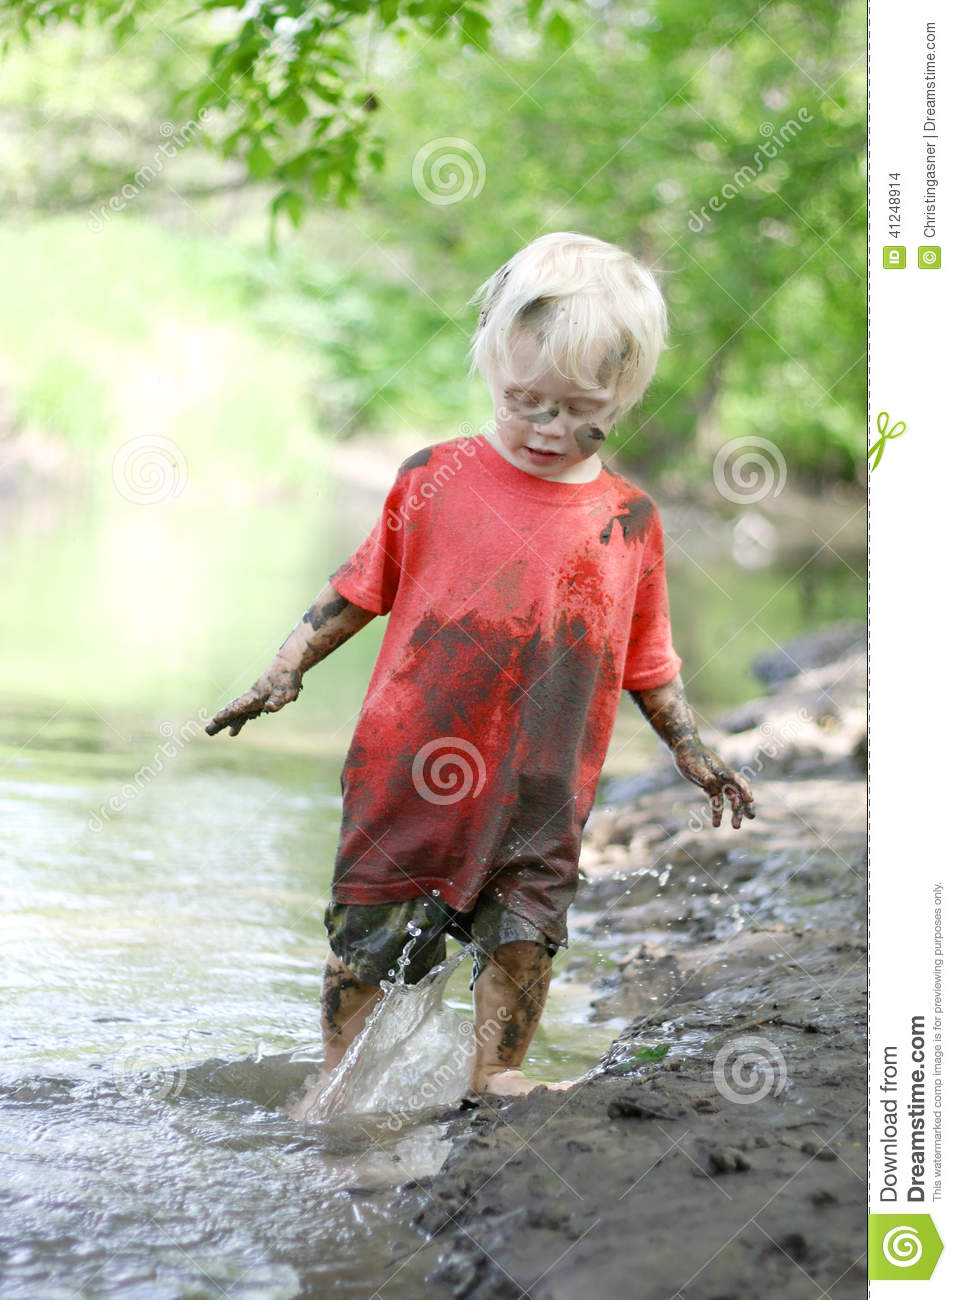 Muddy Little Boy Playing Outside nel fiume